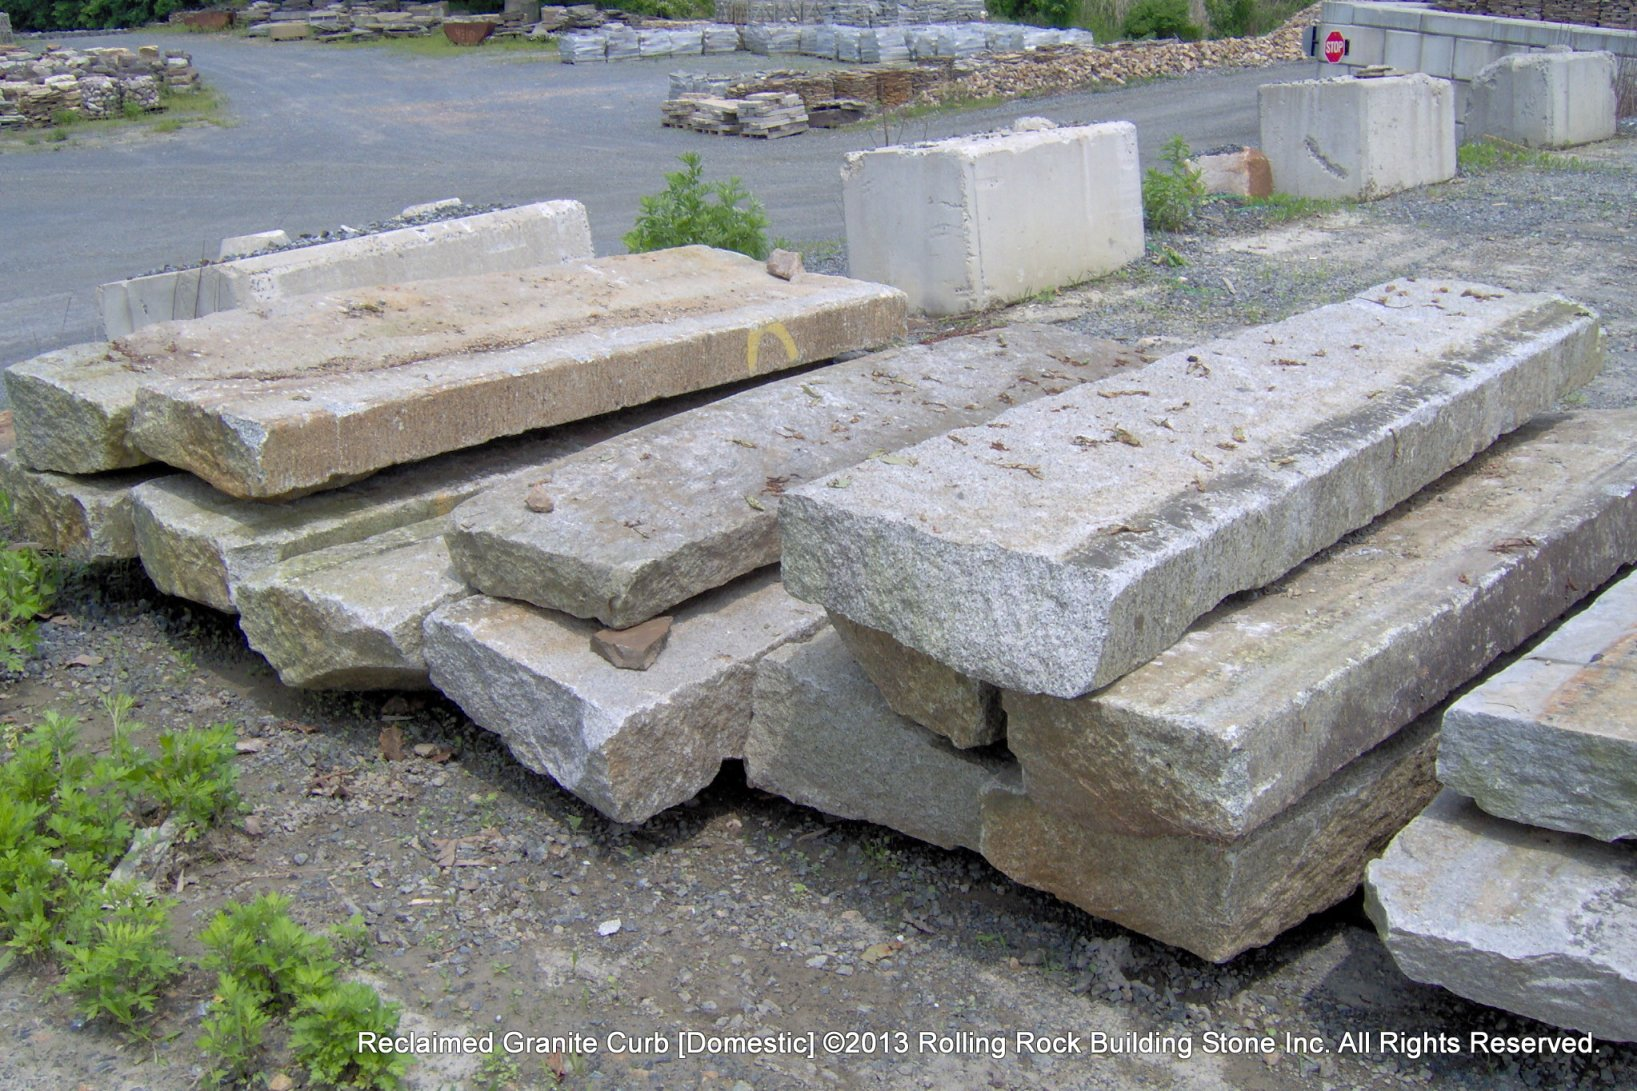 Reclaimed Granite Curb | Rolling Rock Building Stone, Inc